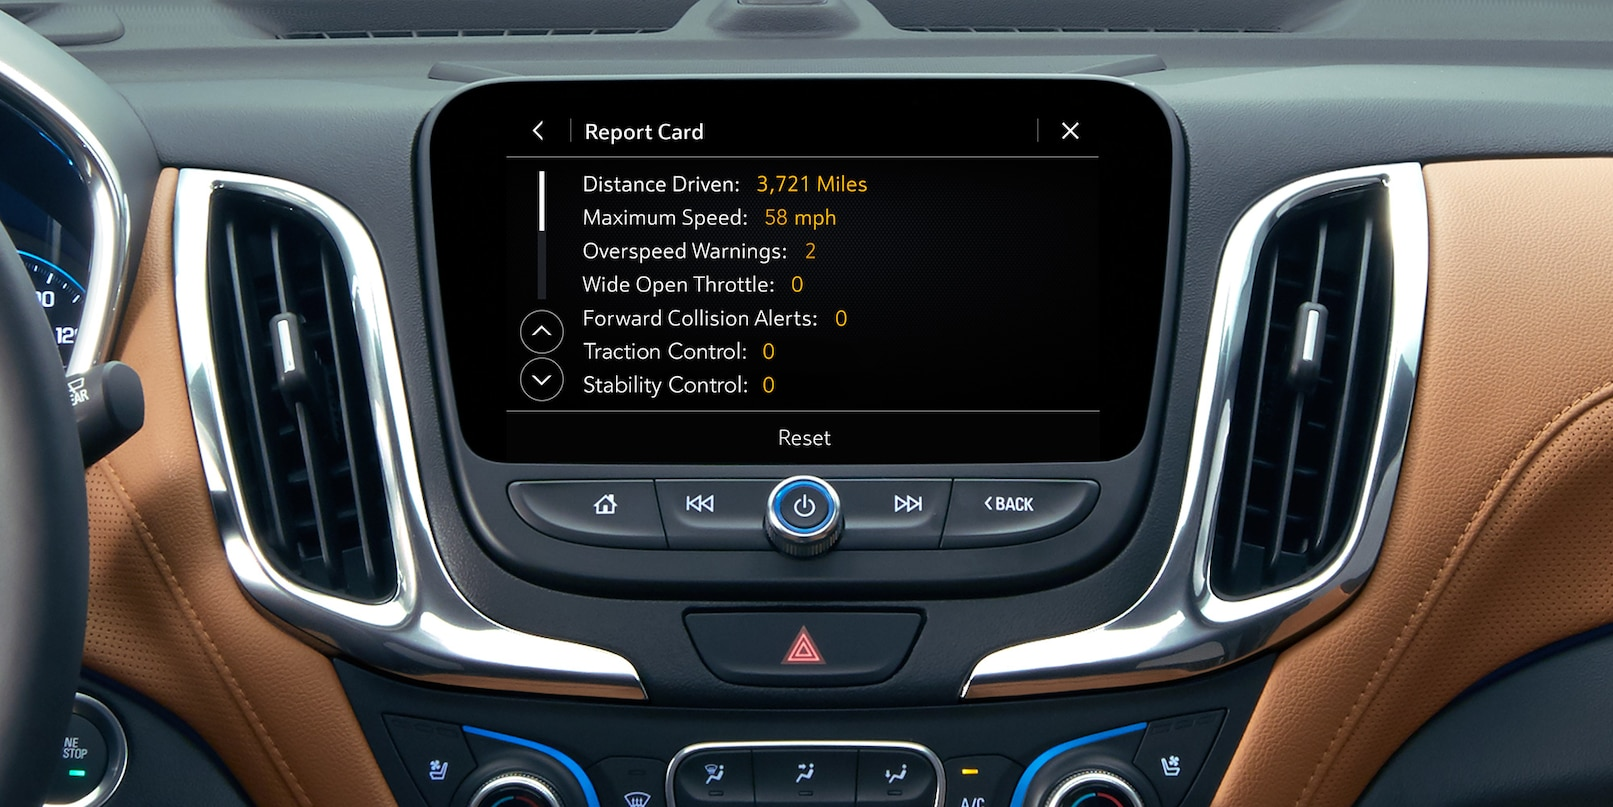 Touchscreen Display in the Chevrolet Equinox